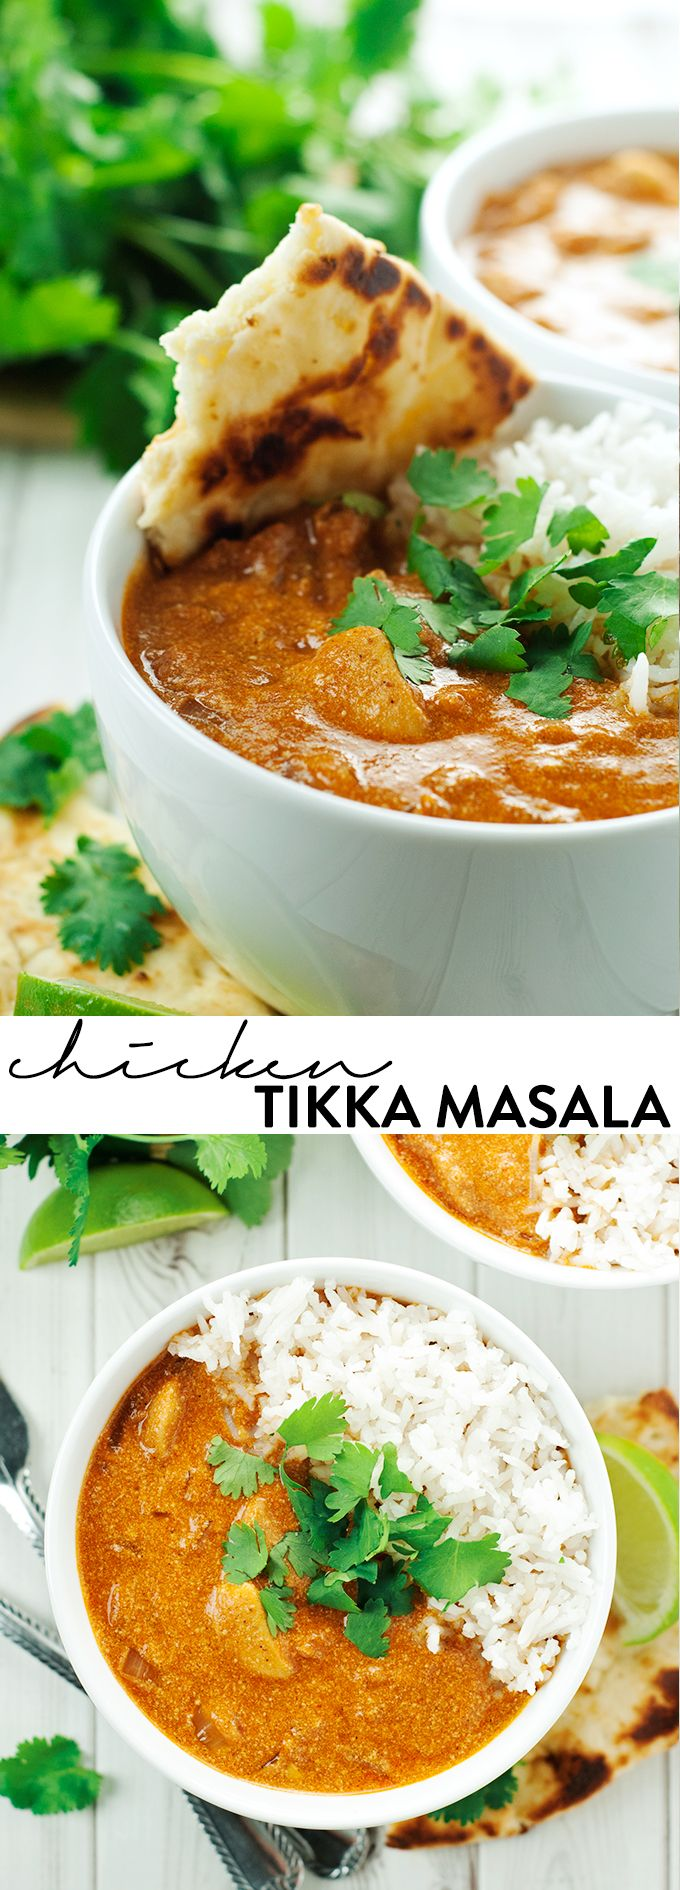 Easy Tikka Masala, ready in 30 minutes! I'll use paneer instead of chickens. asimplepantry.com #LoveBlooms #ad